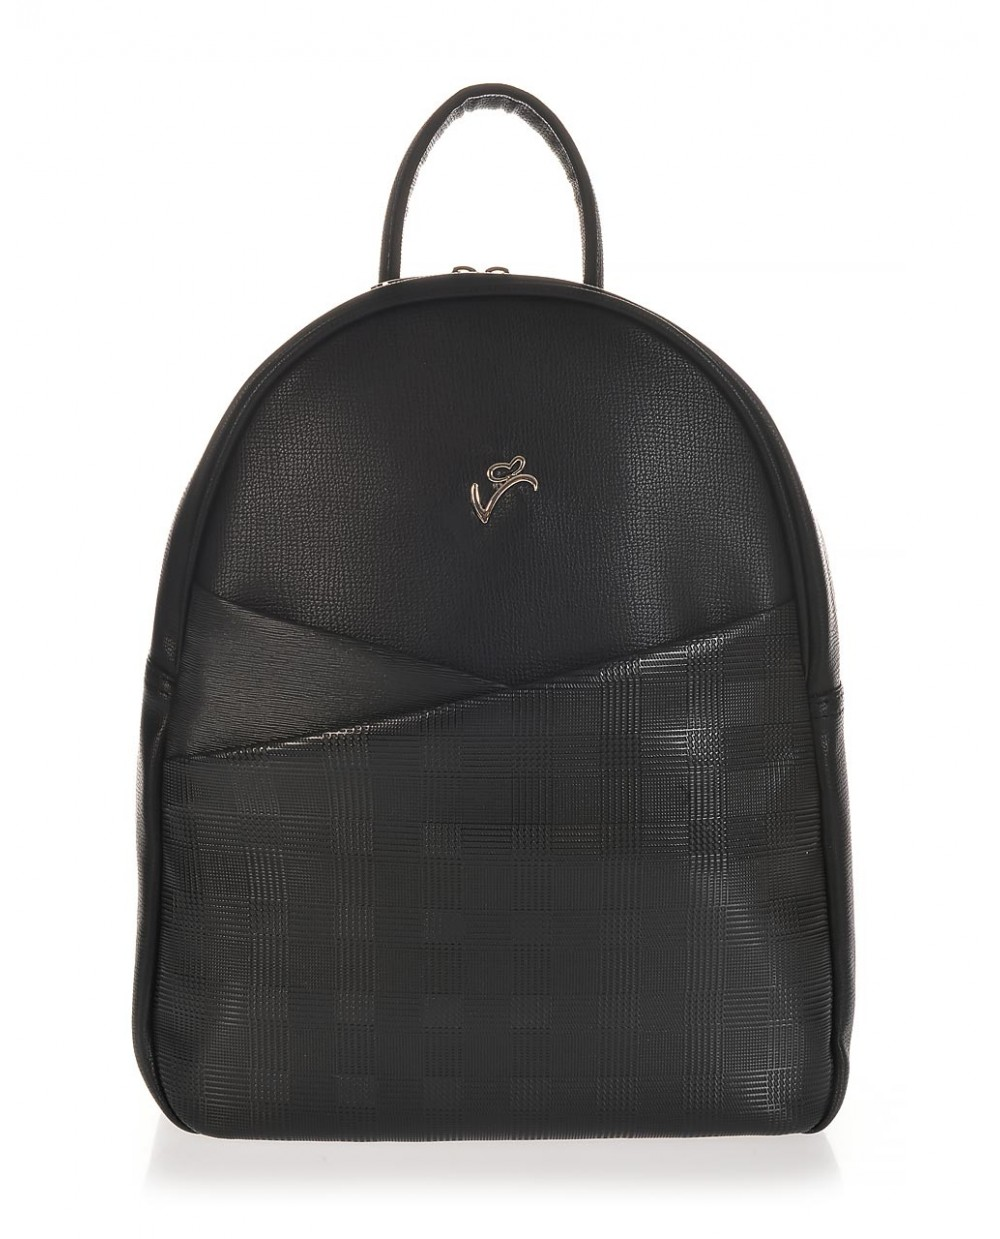 BACKPACK 701